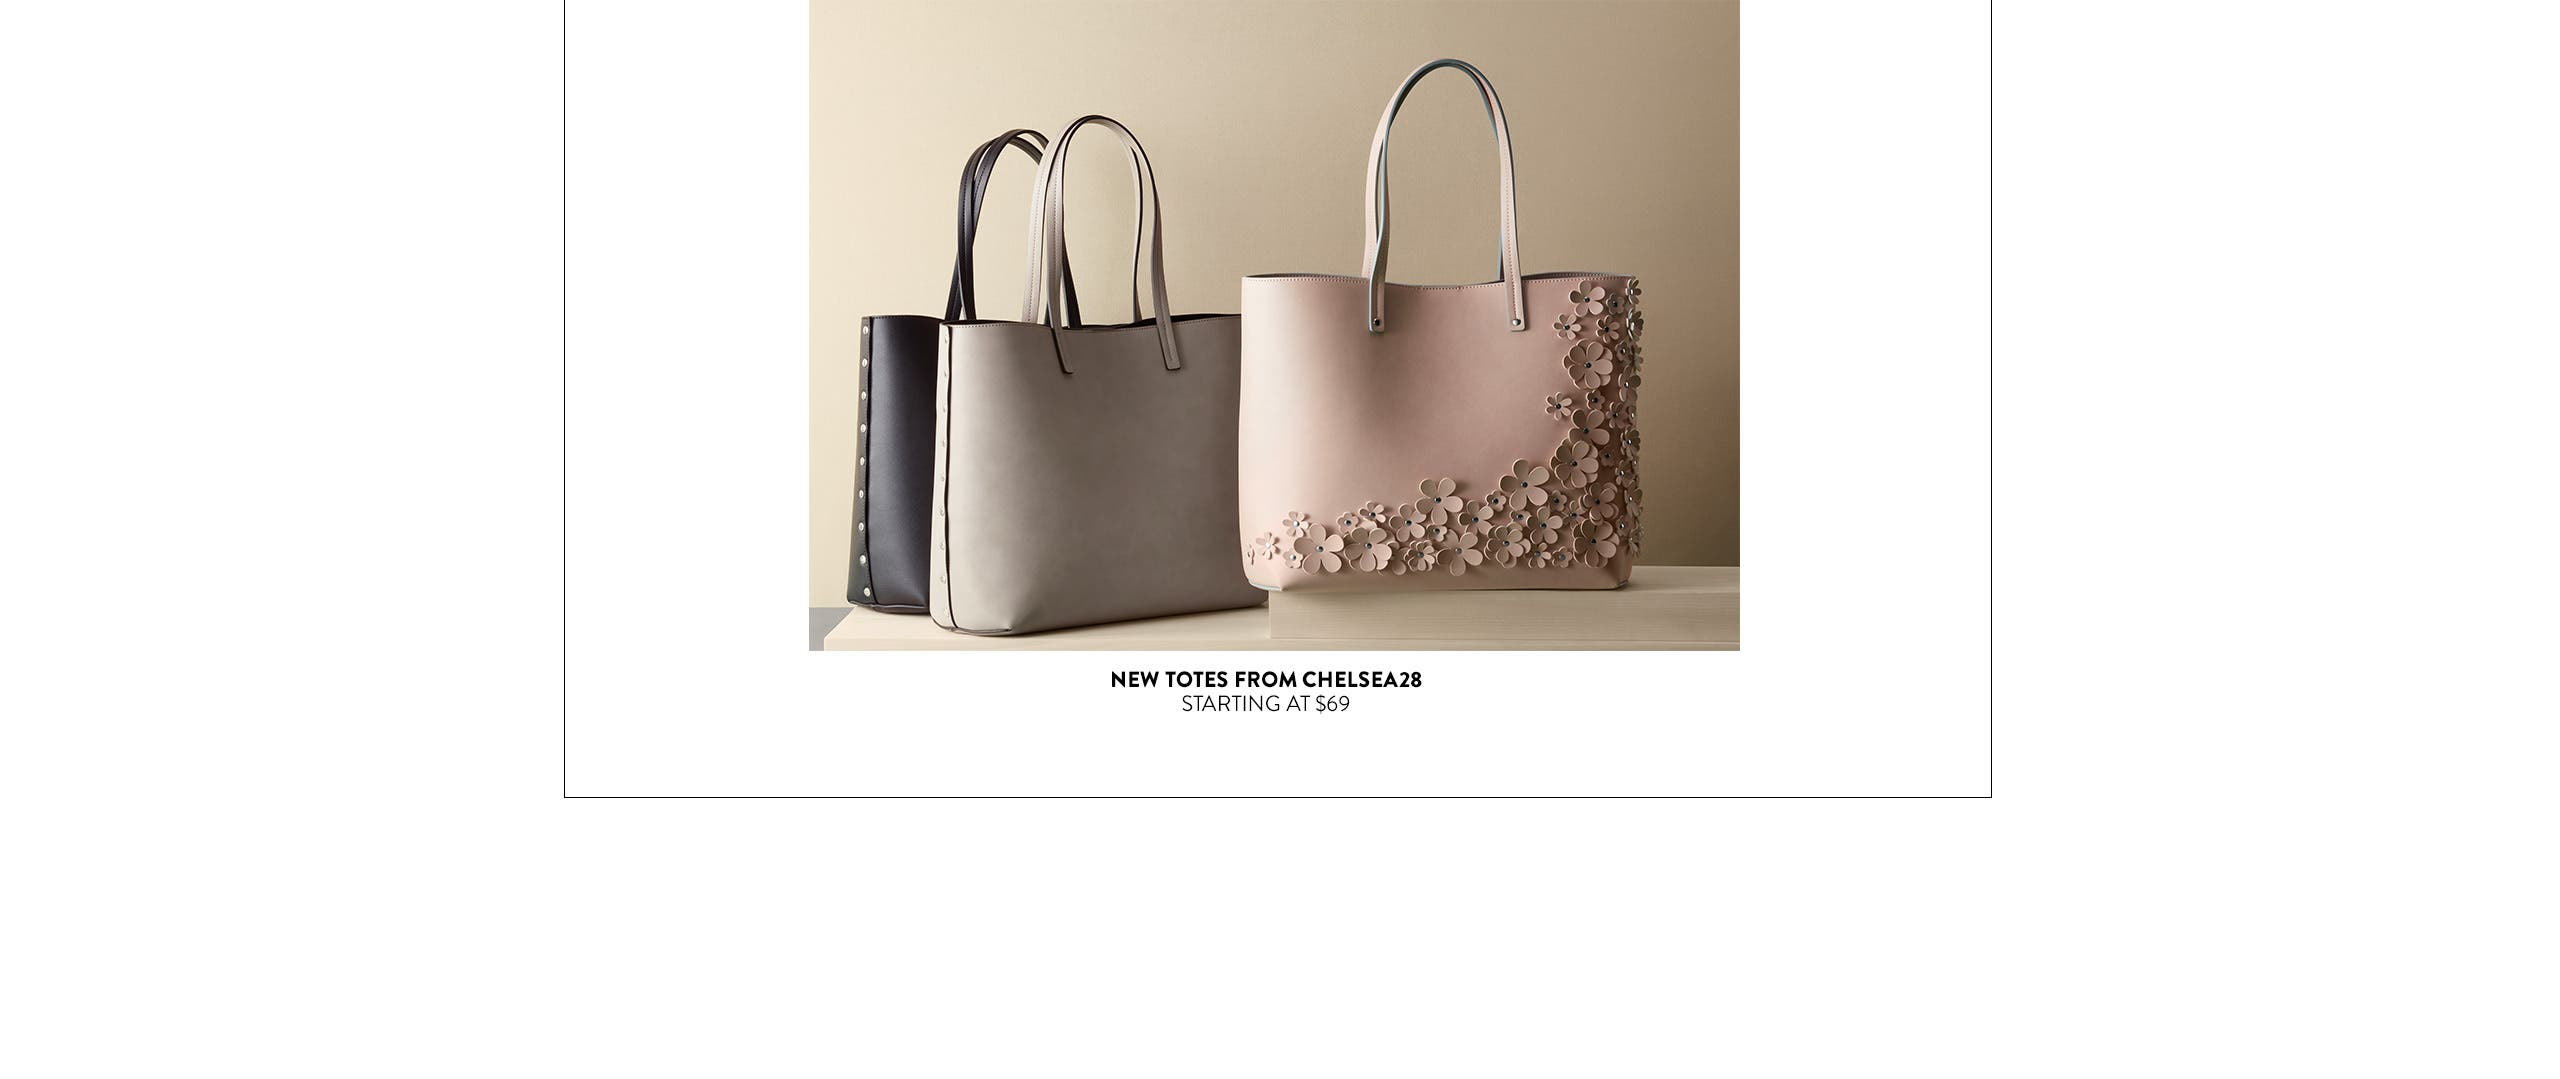 New totes from Chelsea 28.